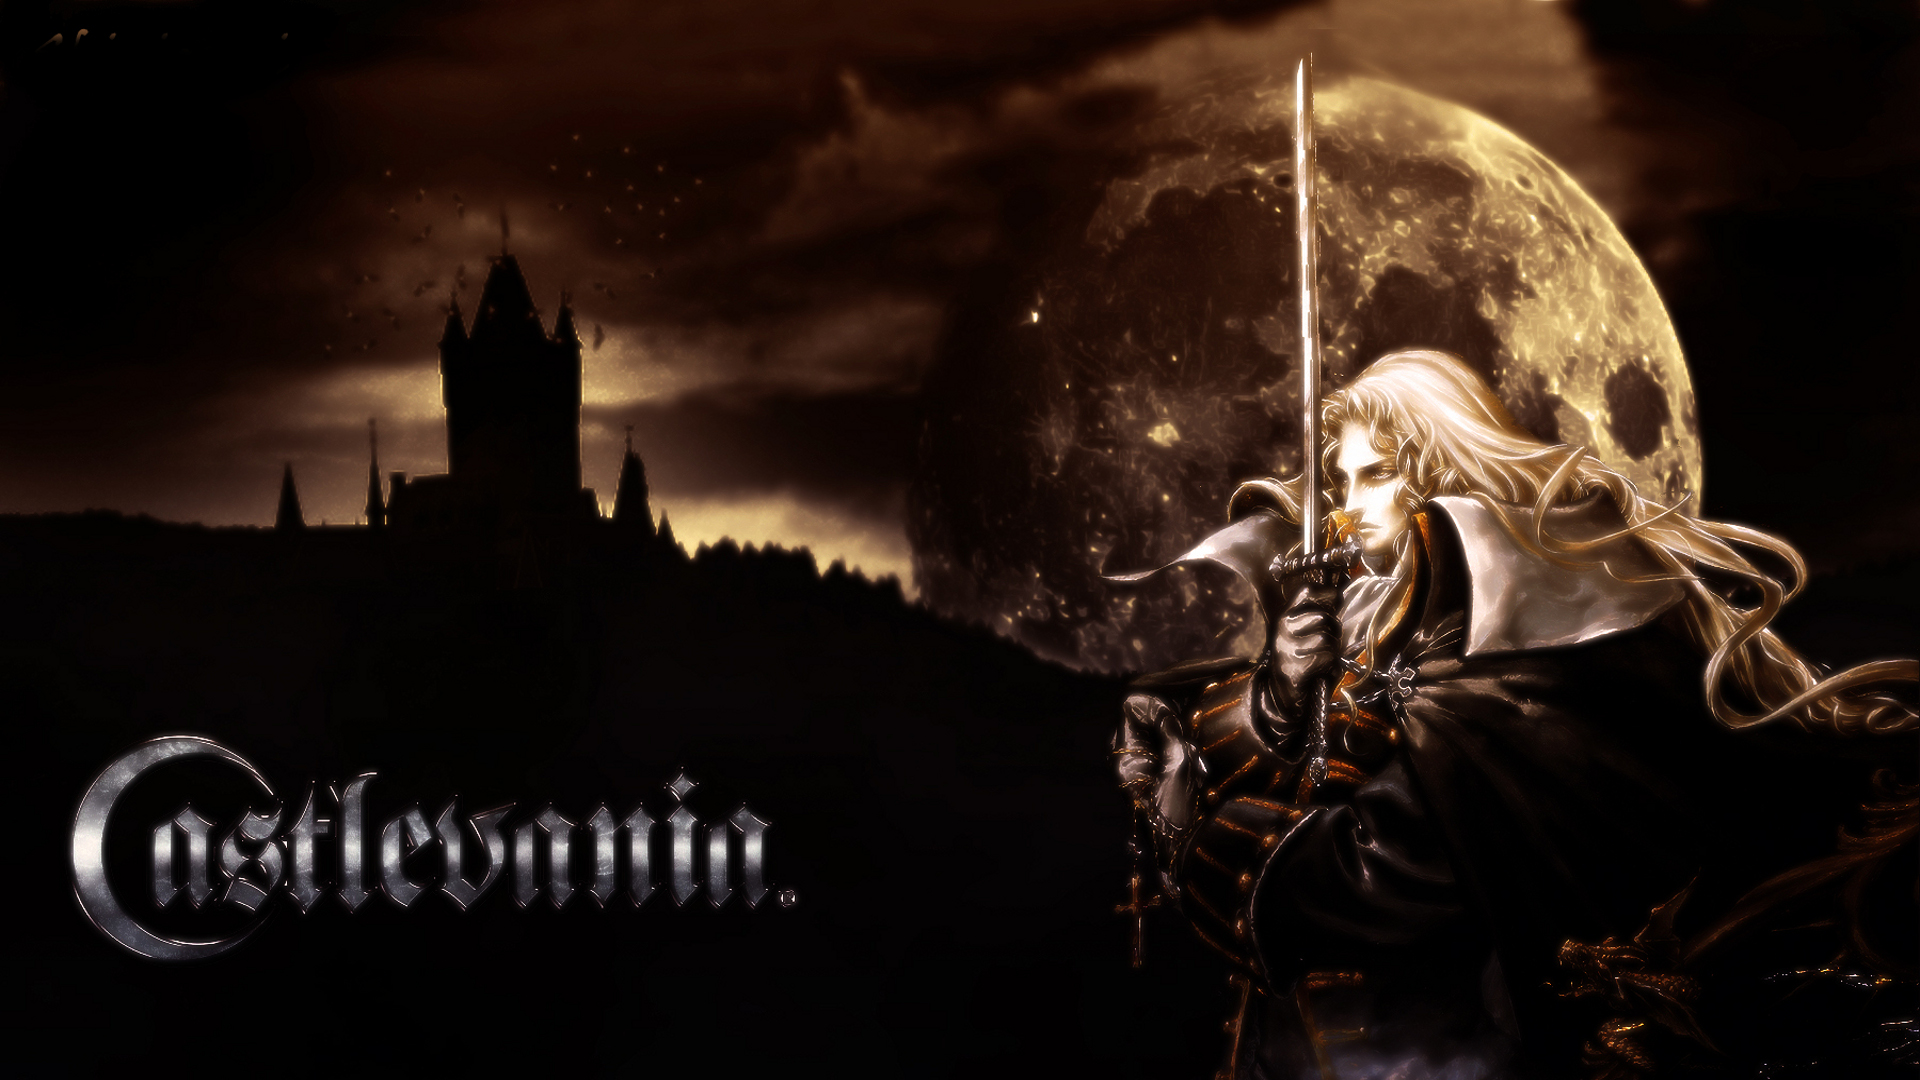 castlevania symphony of the night iphone wallpaper